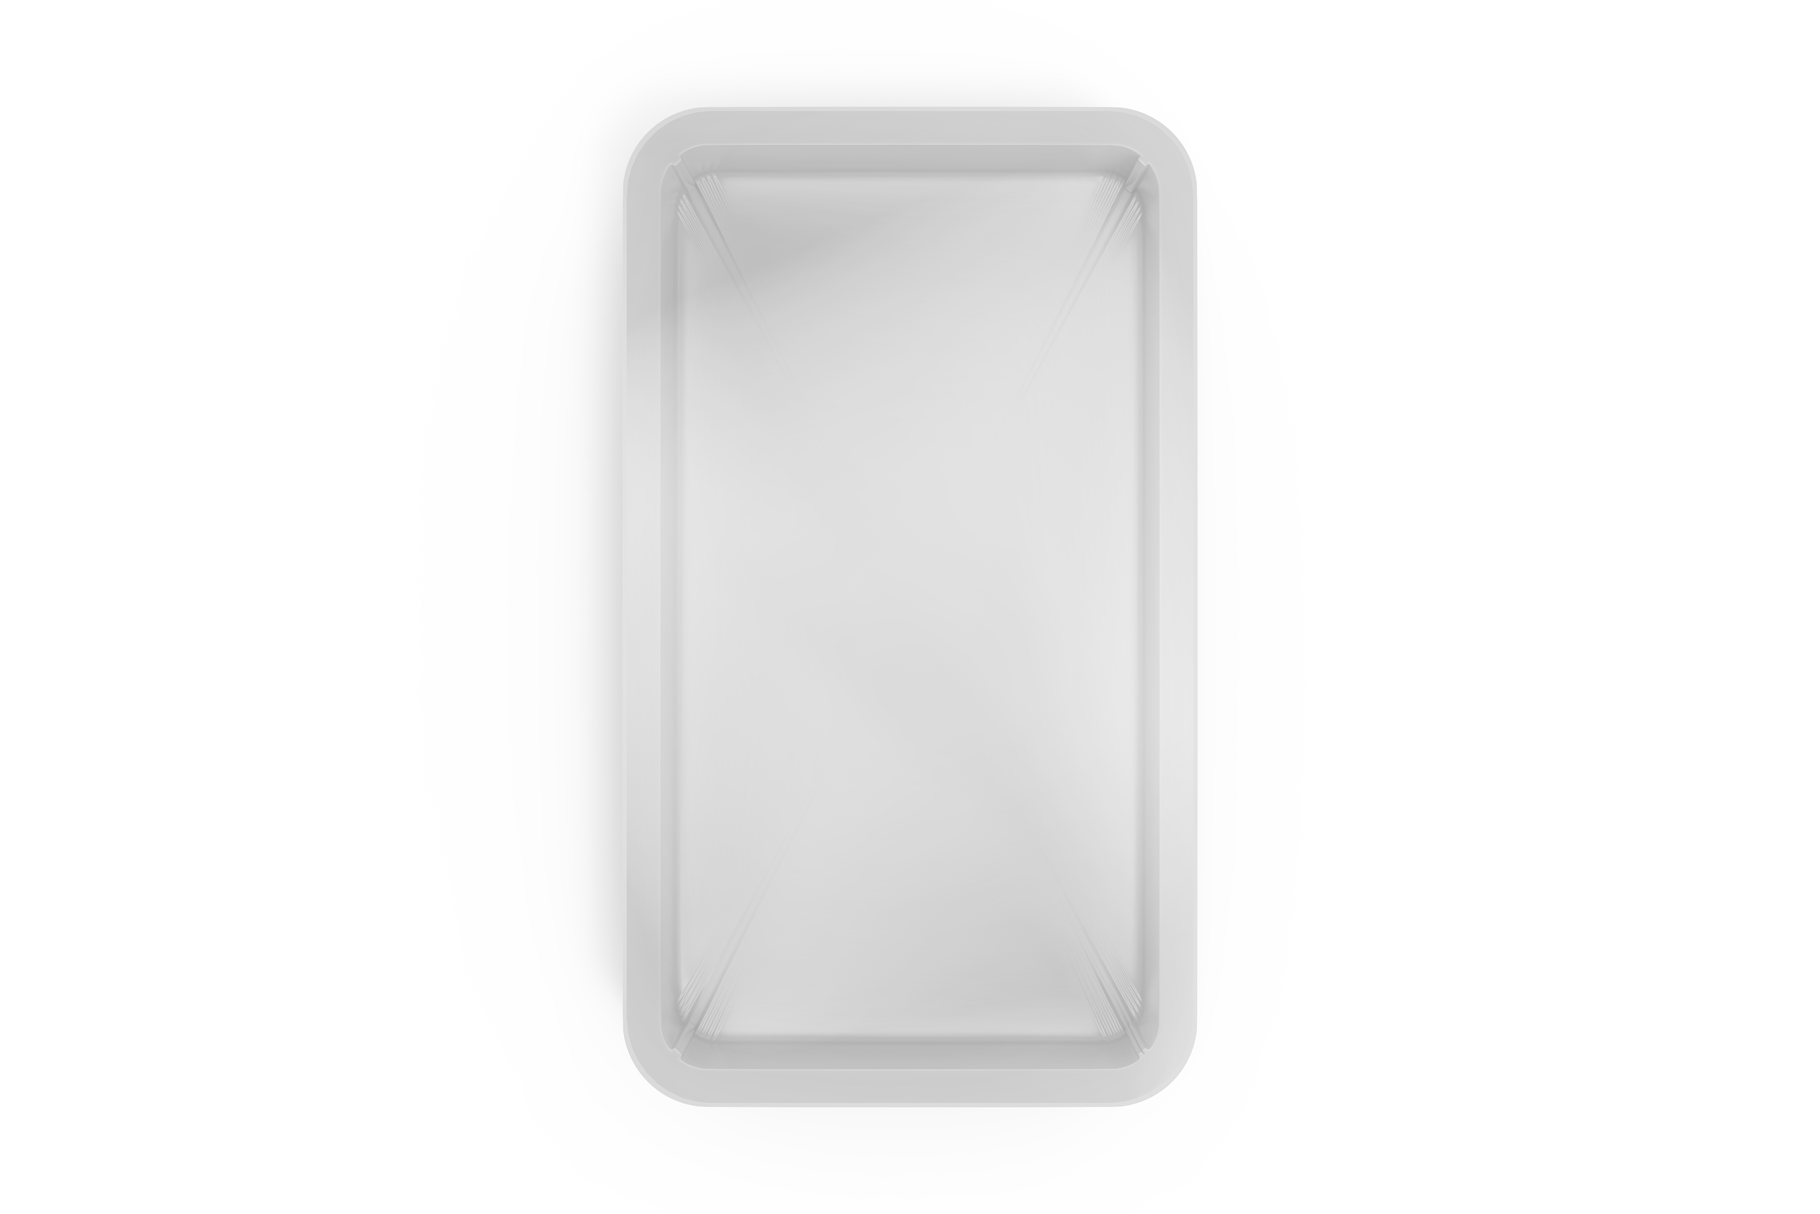 Plastic Tray With Asparagus Mockup example image 5